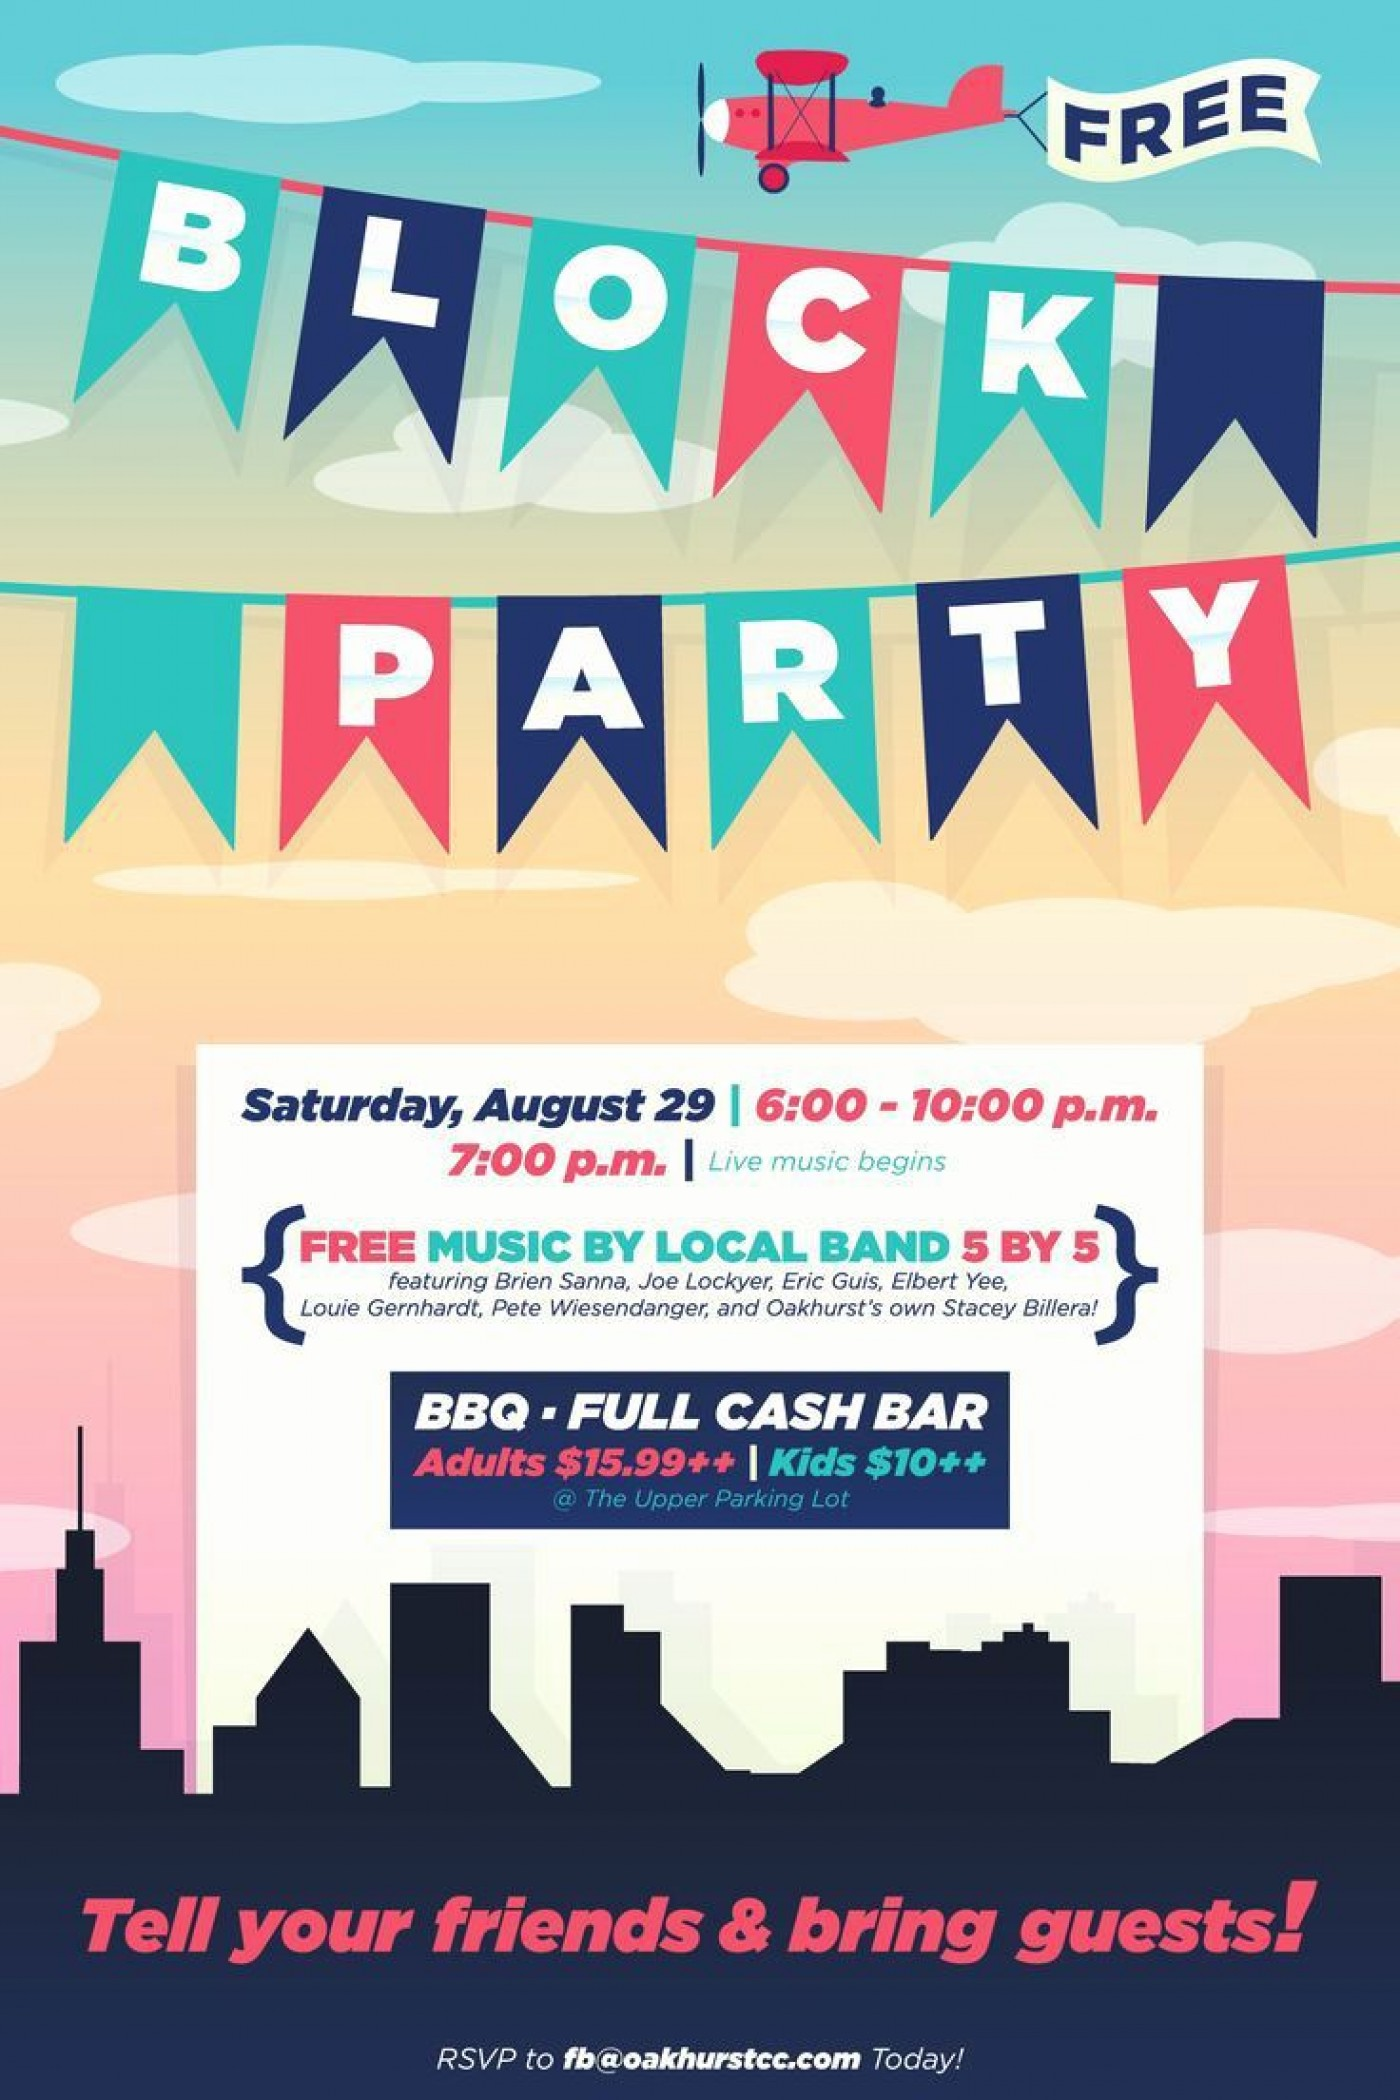 003 Unforgettable Block Party Flyer Template Concept  Free1400